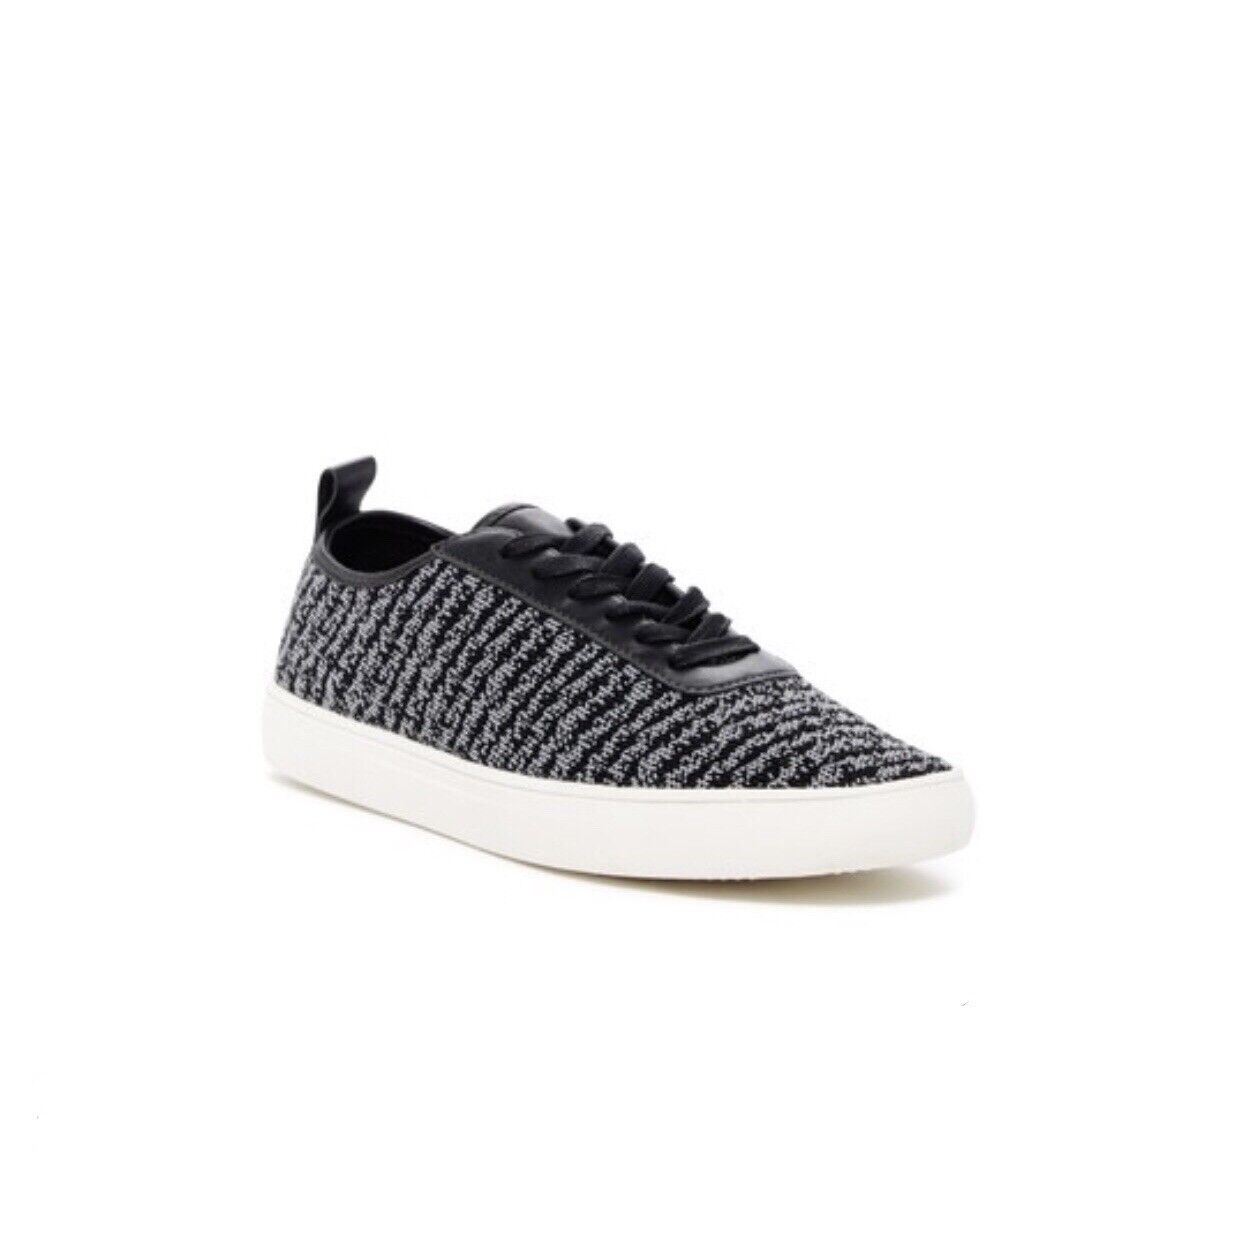 New! Kenneth Cole Reaction Low-Top Knit  sz 10